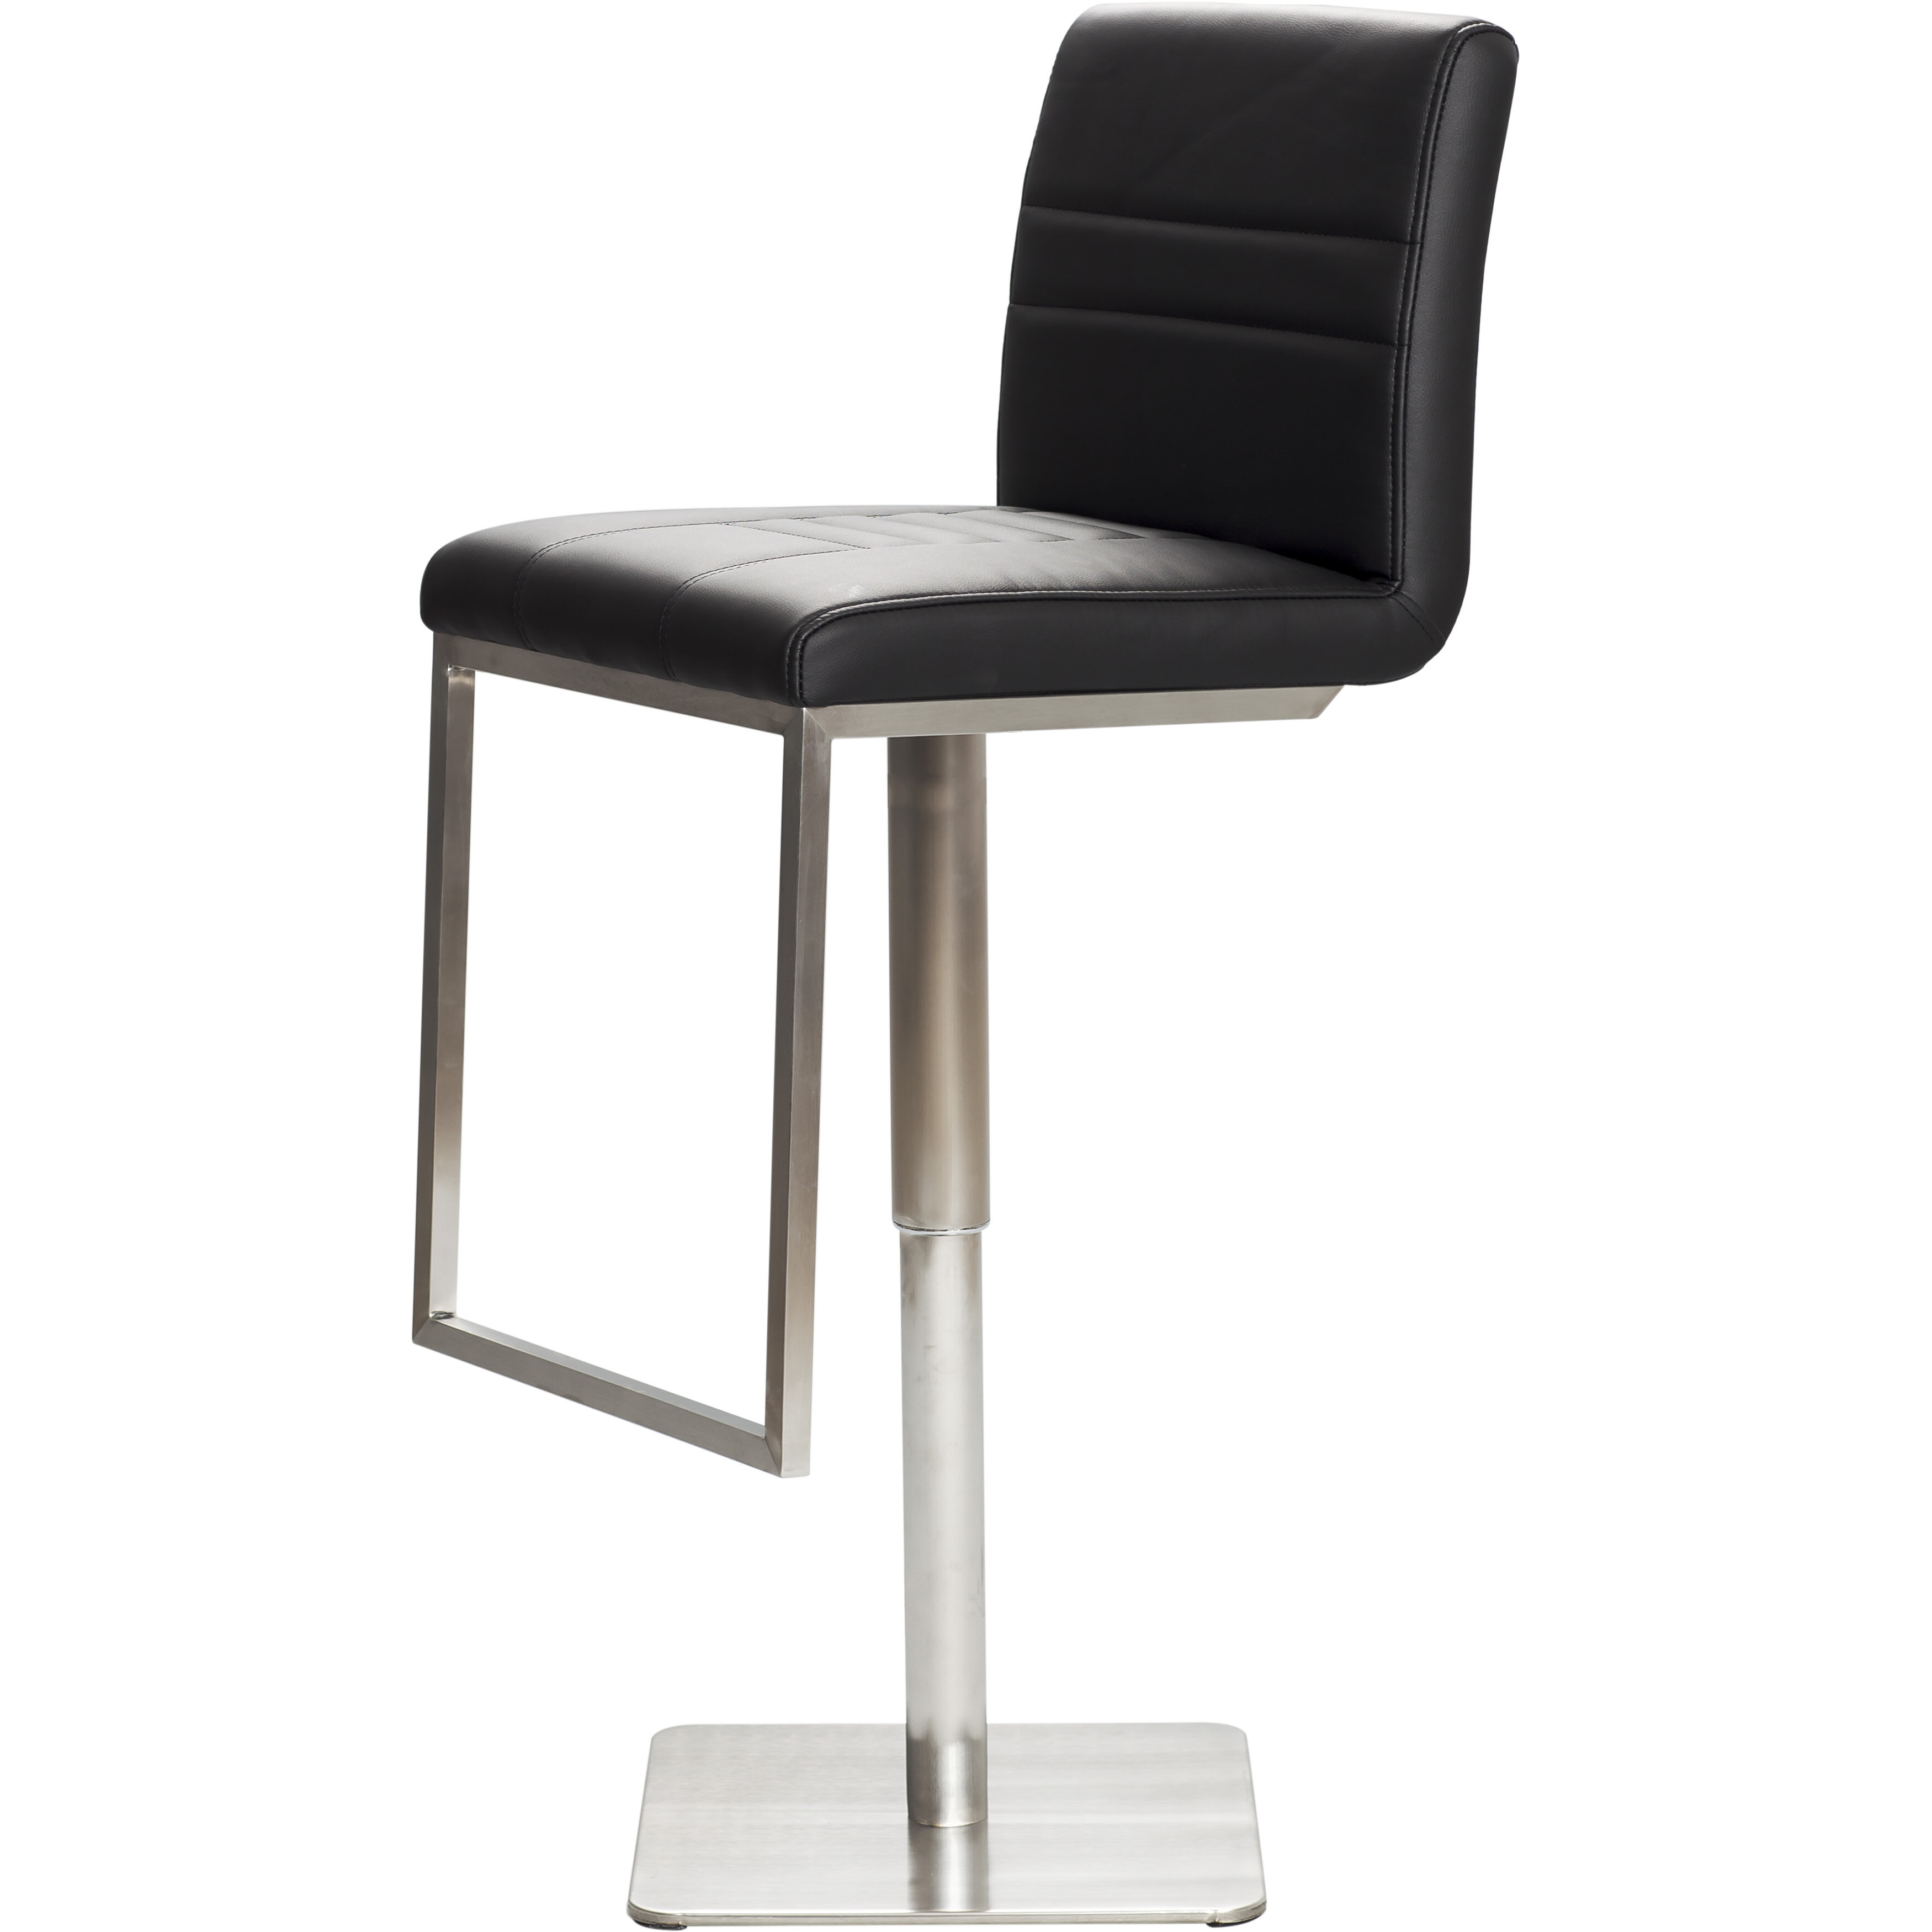 is head can fancy for chair be mid if perfect this round you stool bar make white re stools your a the feeling will century to swivel that leather customized fit go